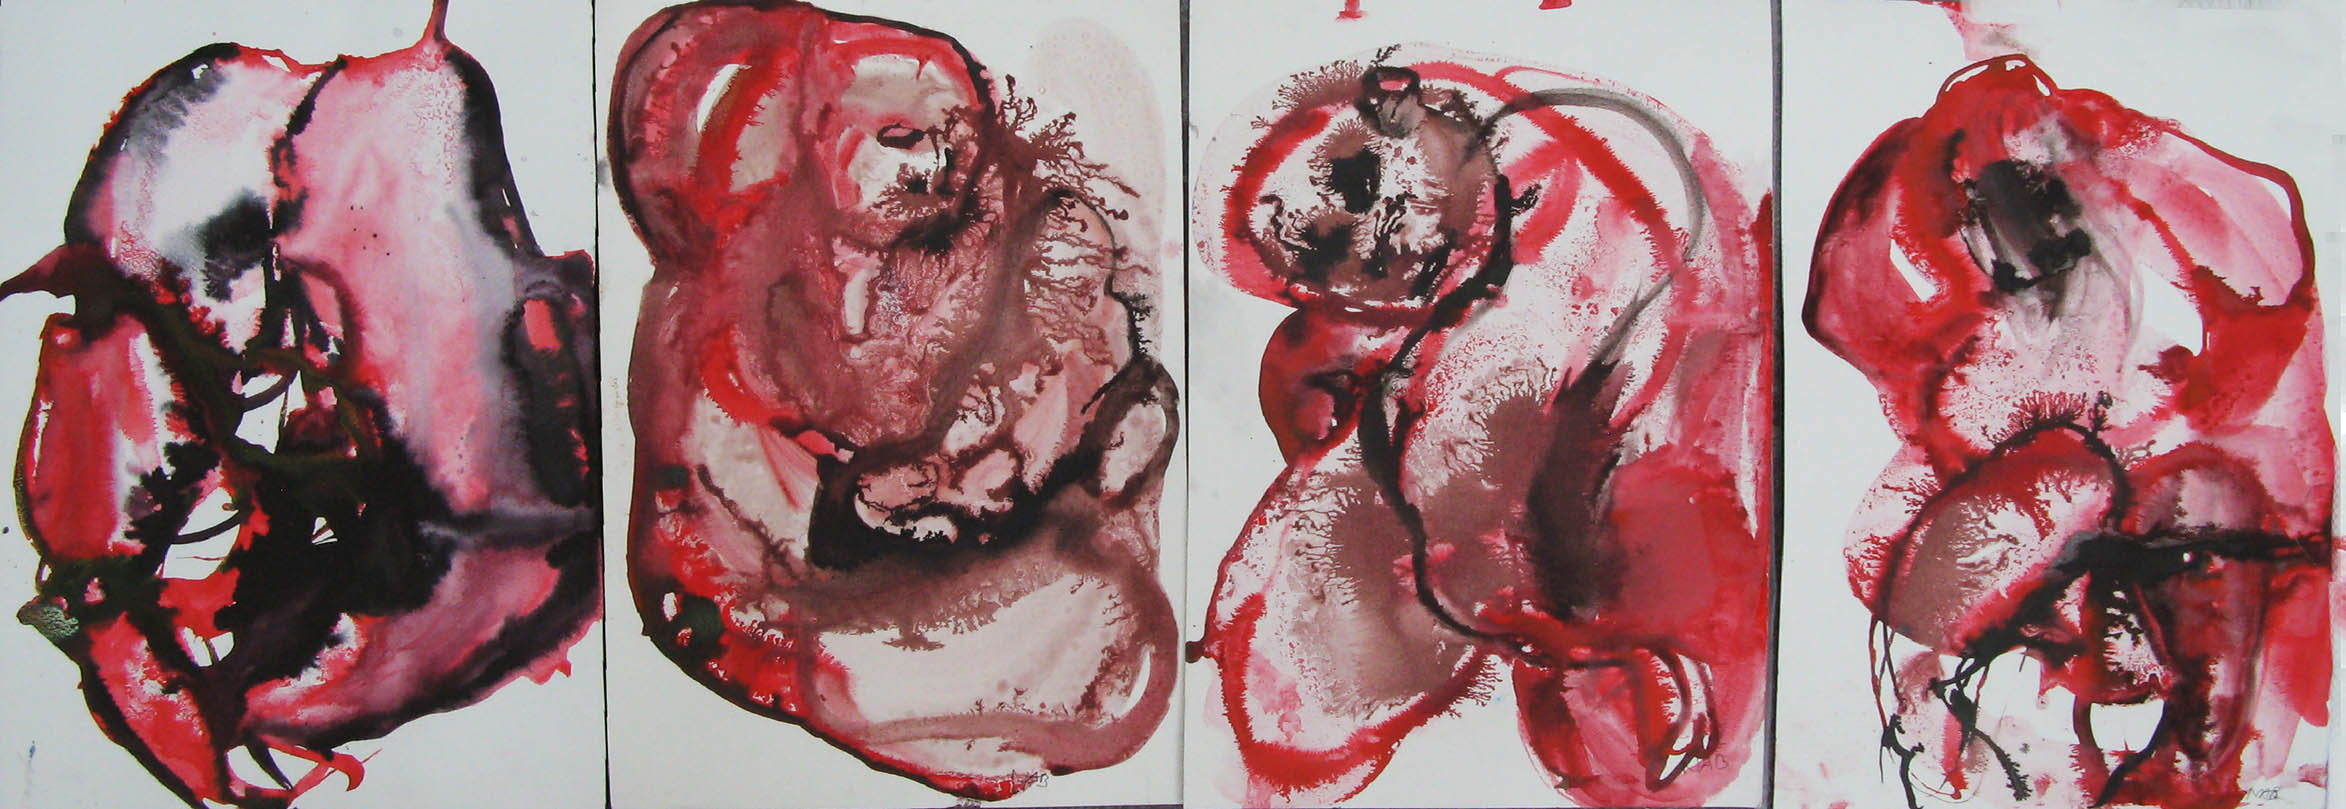 REd 2, 119x42cm,ink on paper.jpg